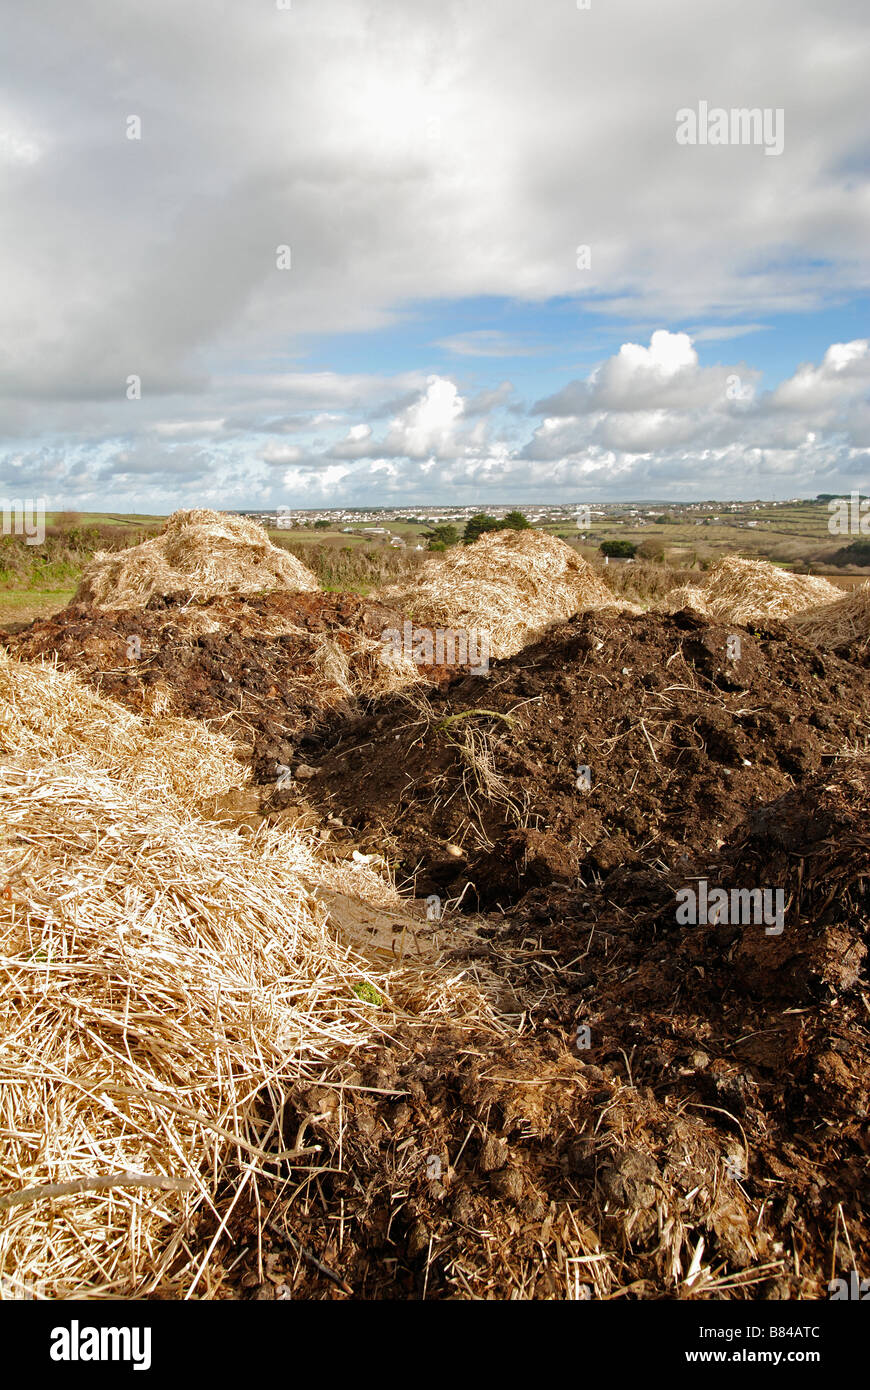 mounds of manure in fields near bristol,england,uk - Stock Image